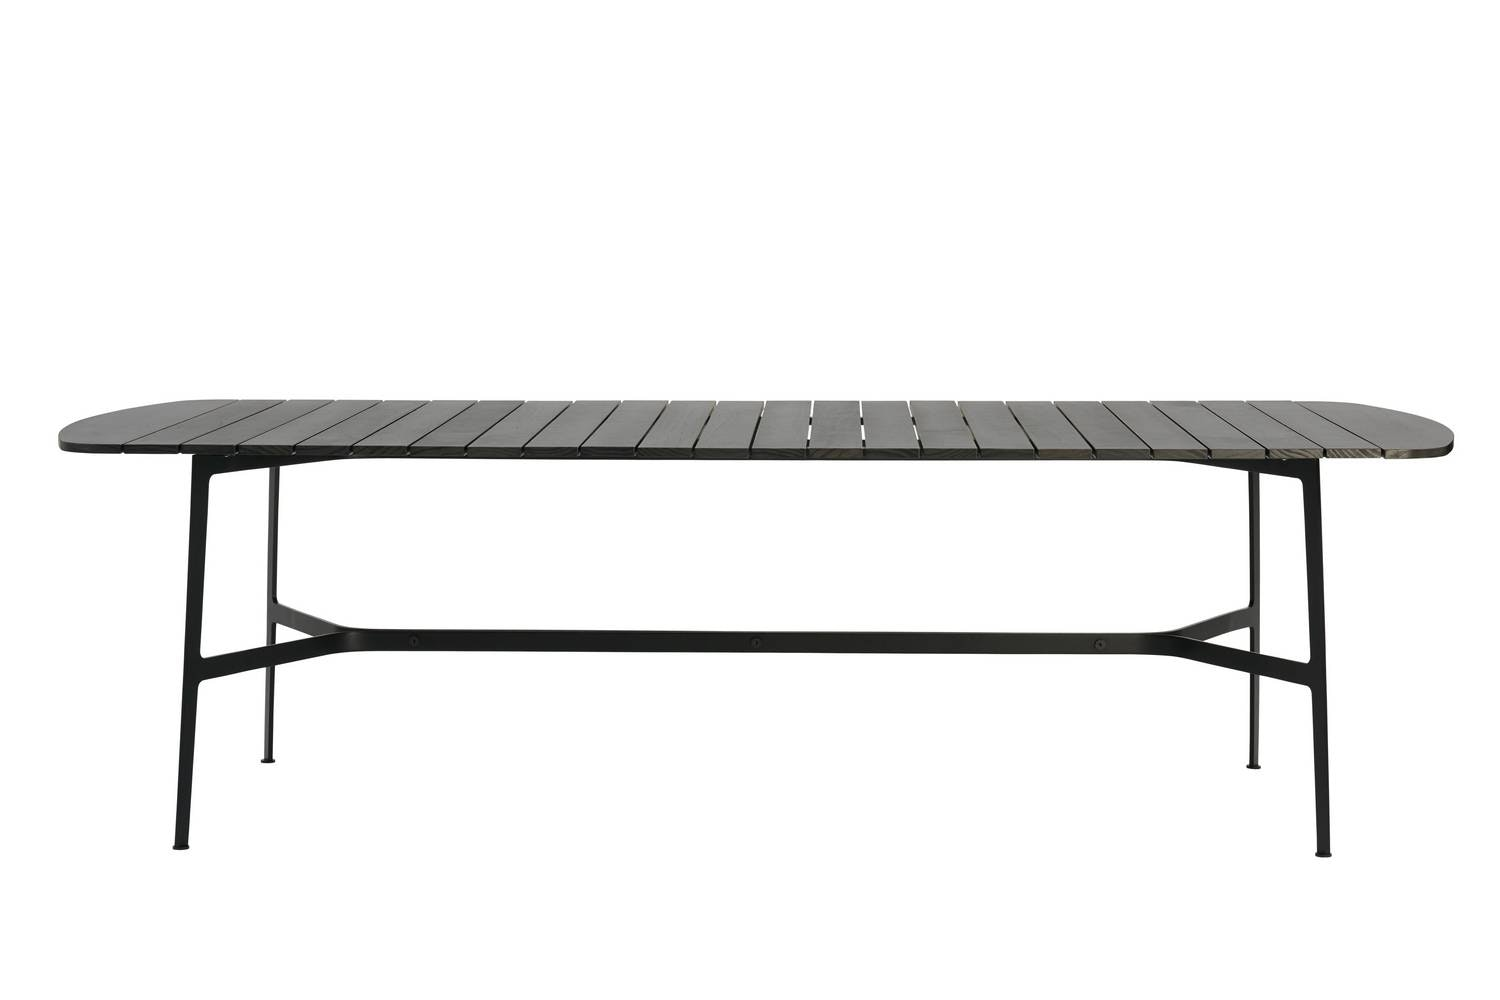 Eileen Table by Tom Fereday for SP01